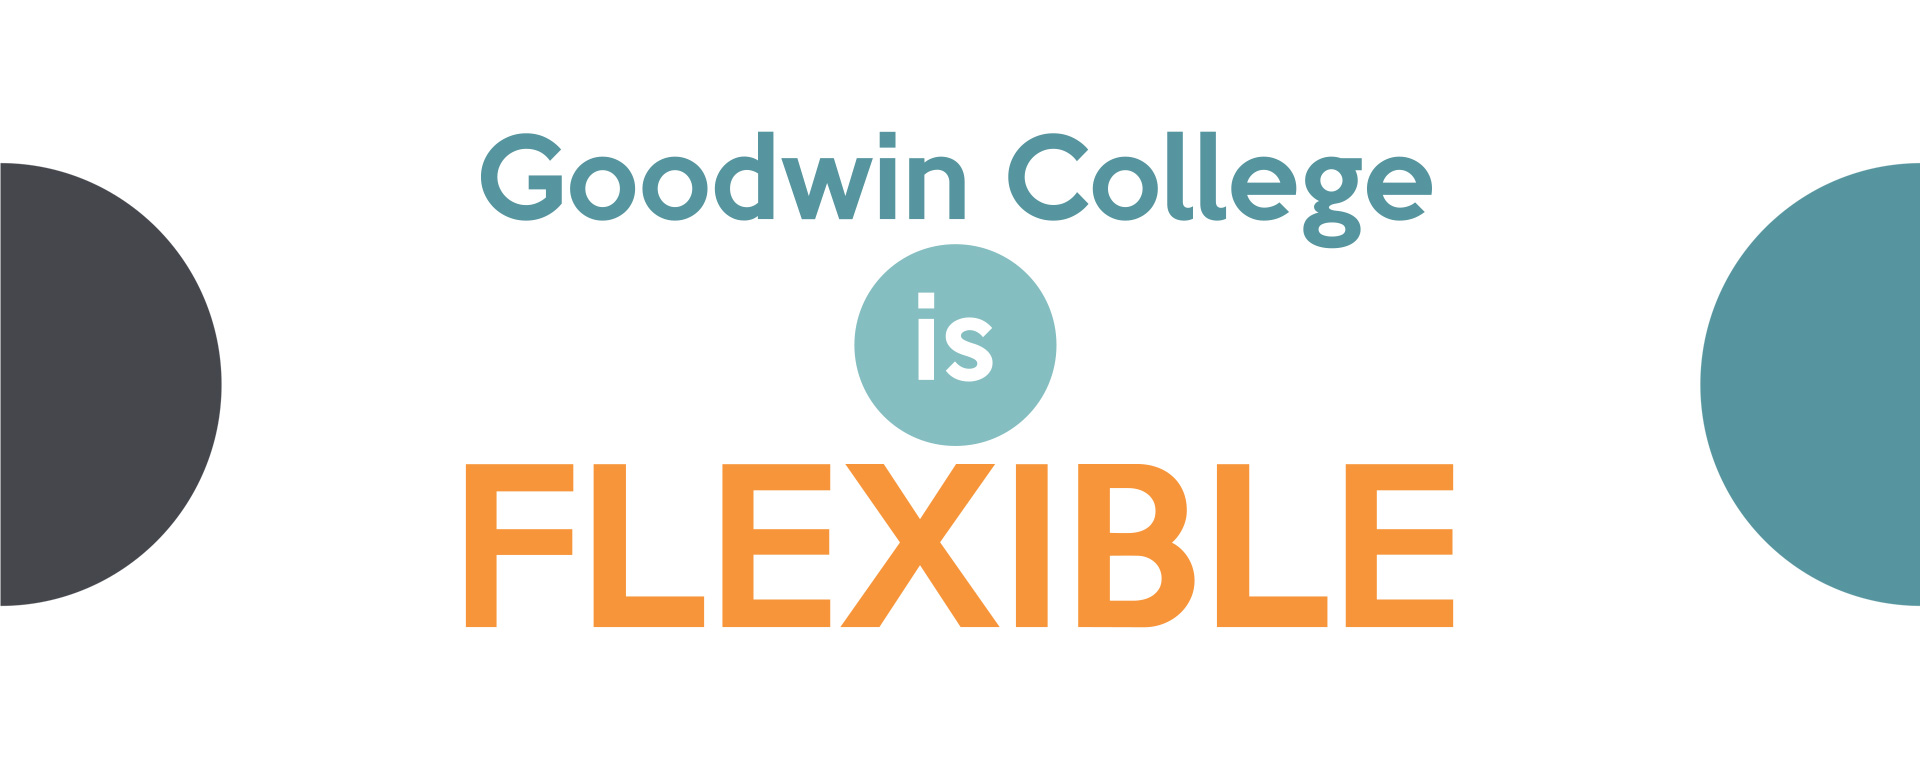 Goodwin College is Flexible